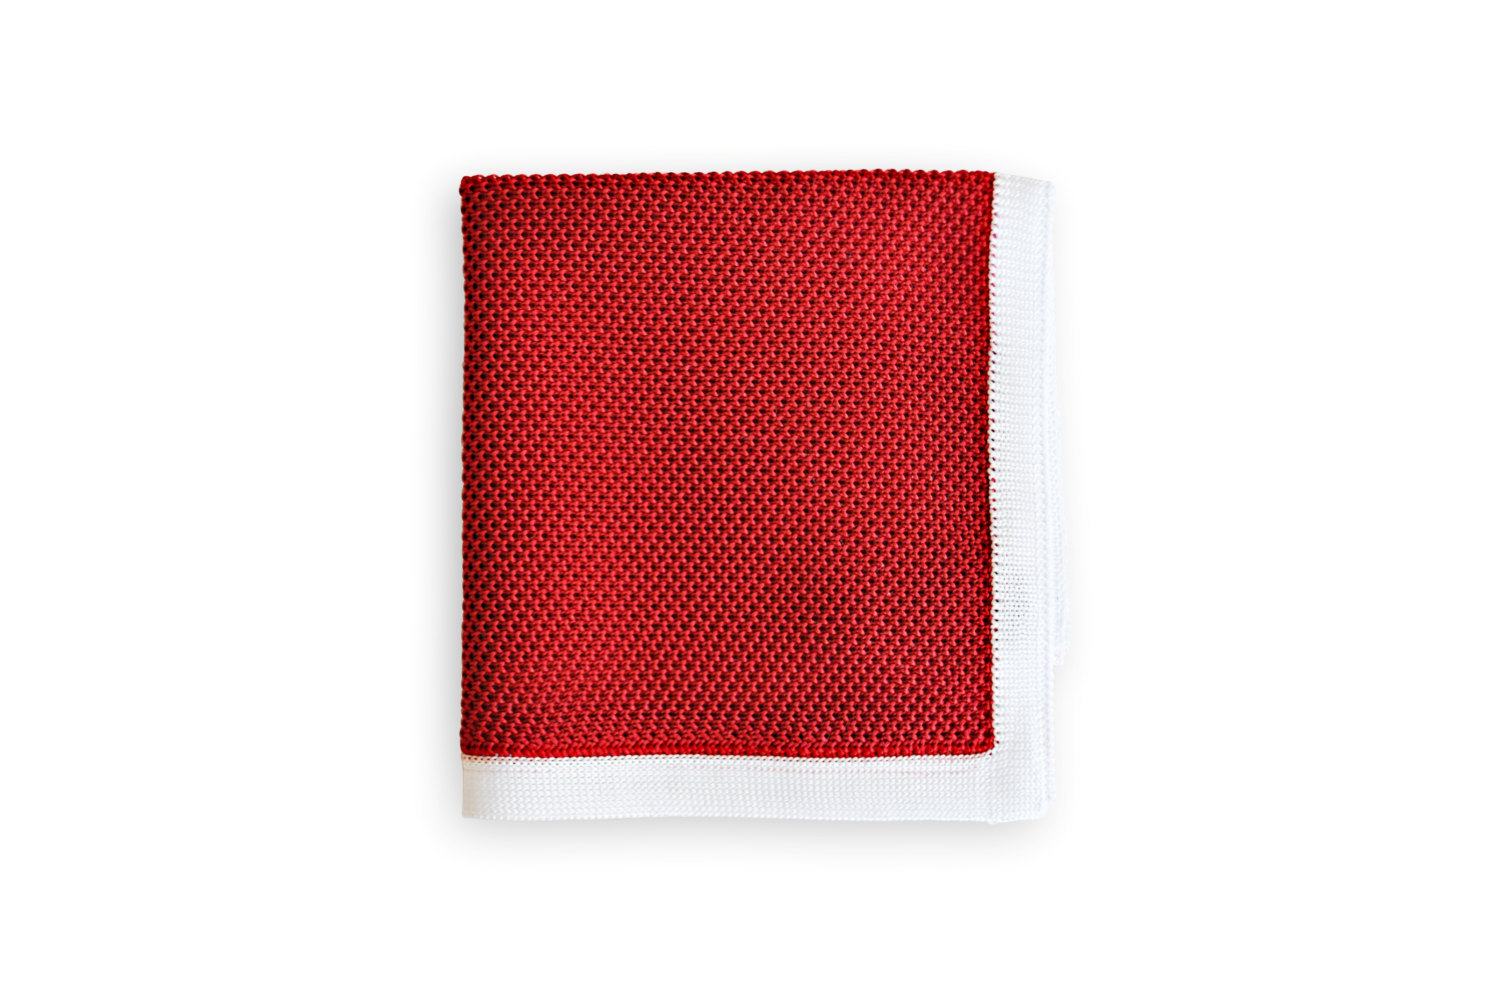 Frederick Thomas knitted Red pocket square with White Edging FT3174